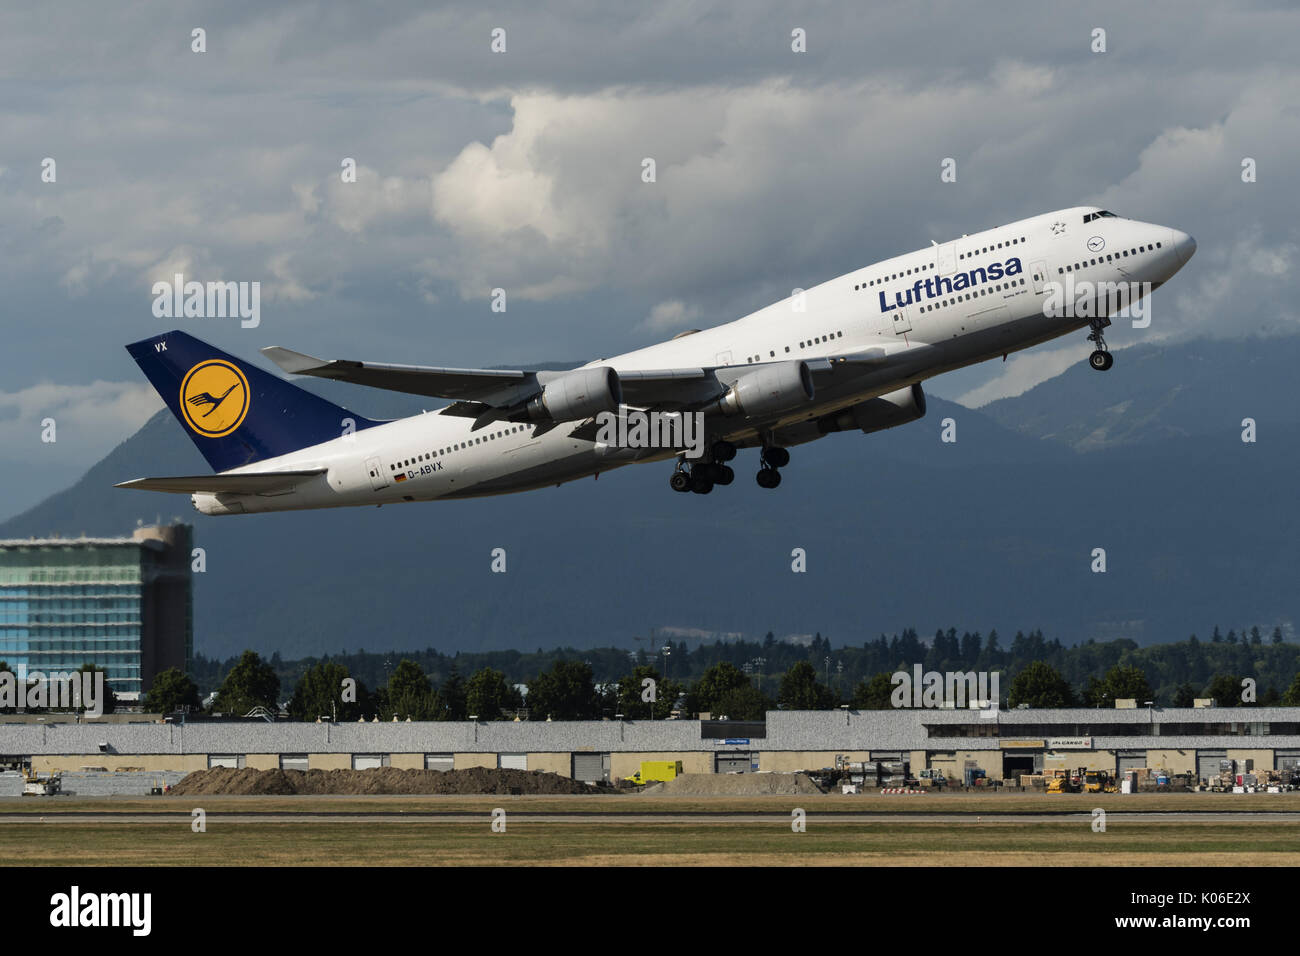 Richmond, British Columbia, Canada. 18th Aug, 2017. A Lufthansa Boeing 747-400 (D-ABVX) wide-body jet airliner takes Stock Photo